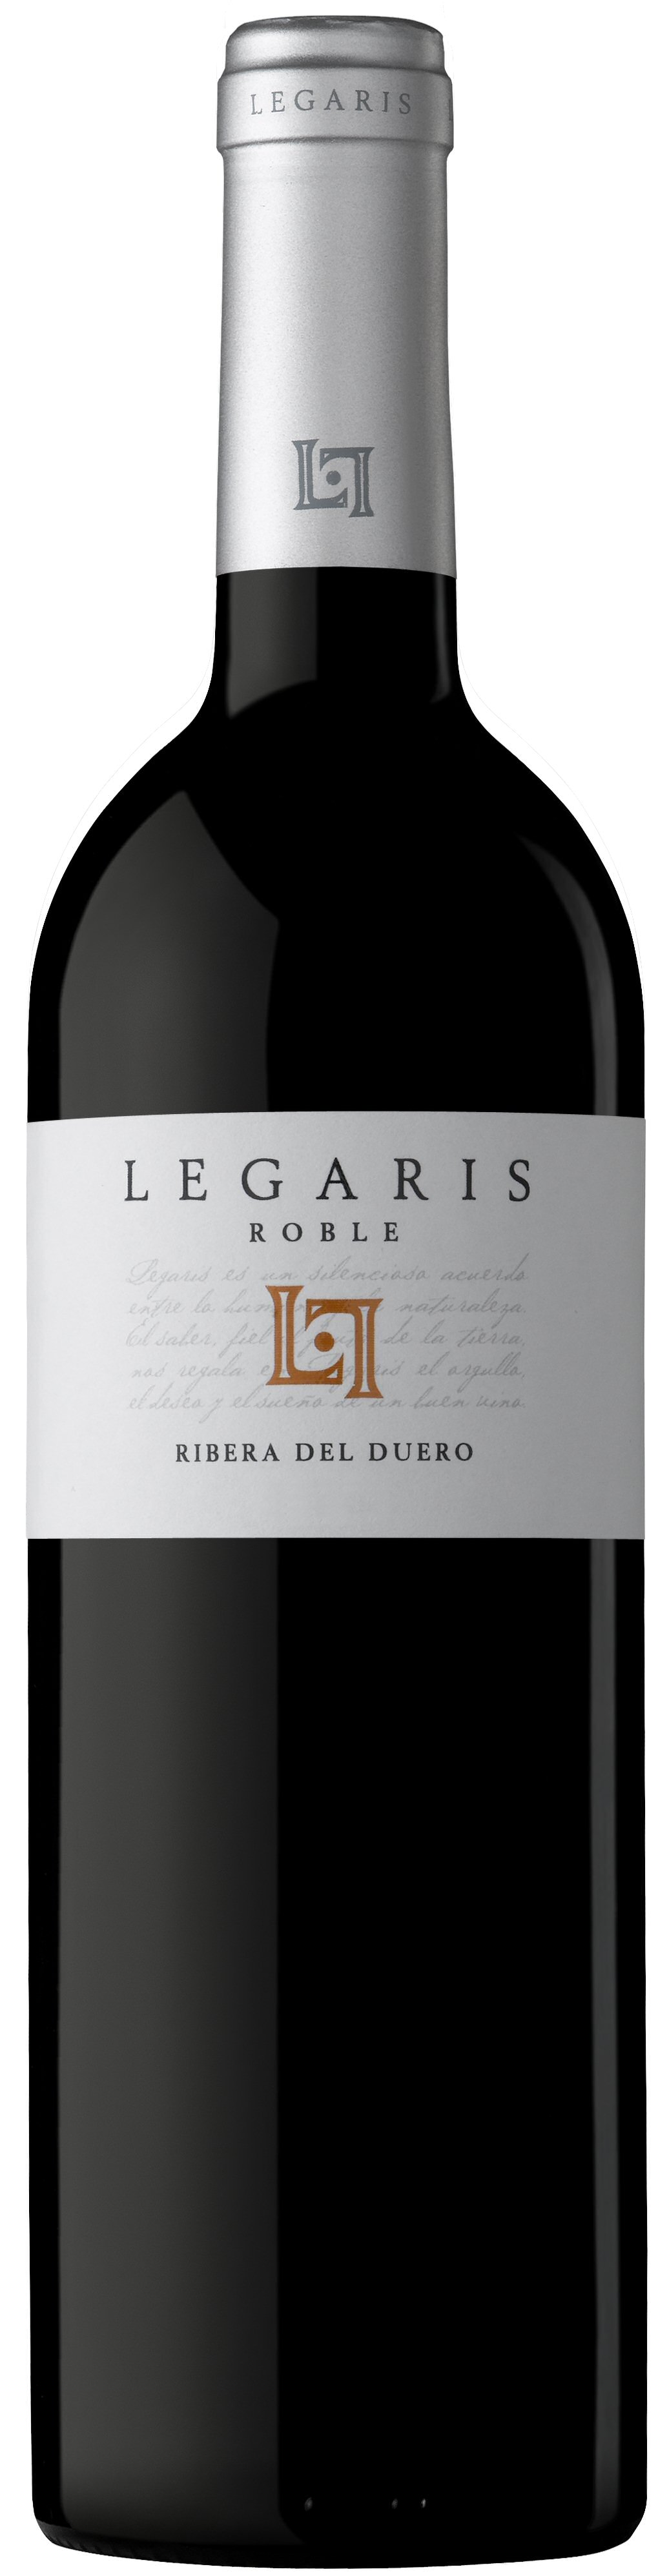 Legaris Roble 2014